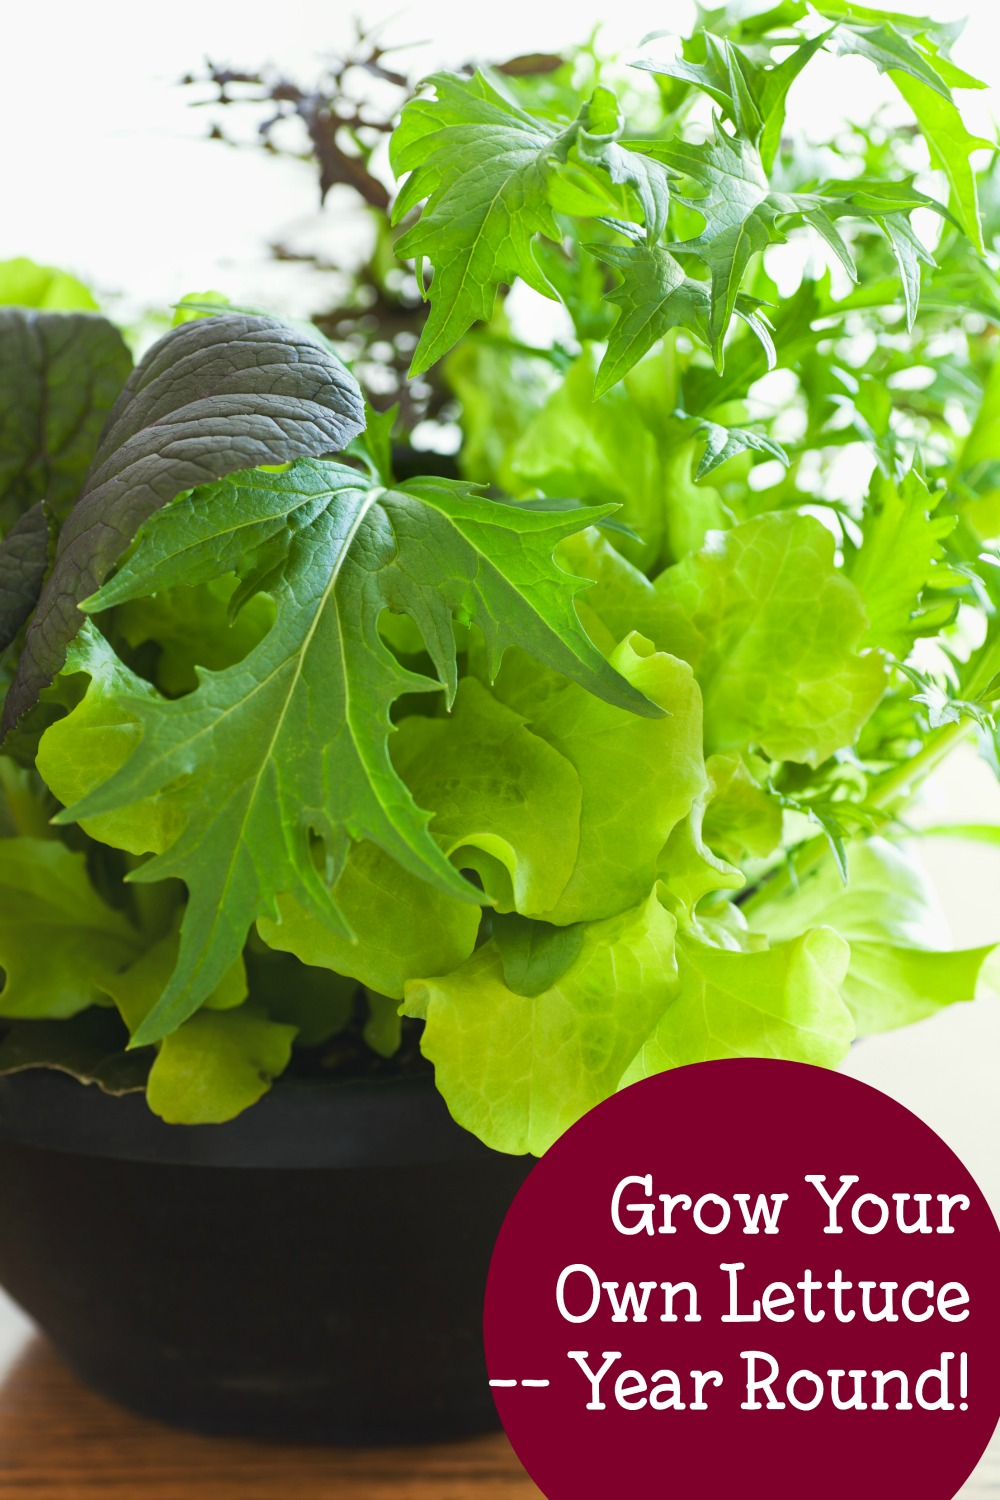 Easy ways to grow your own lettuce year round